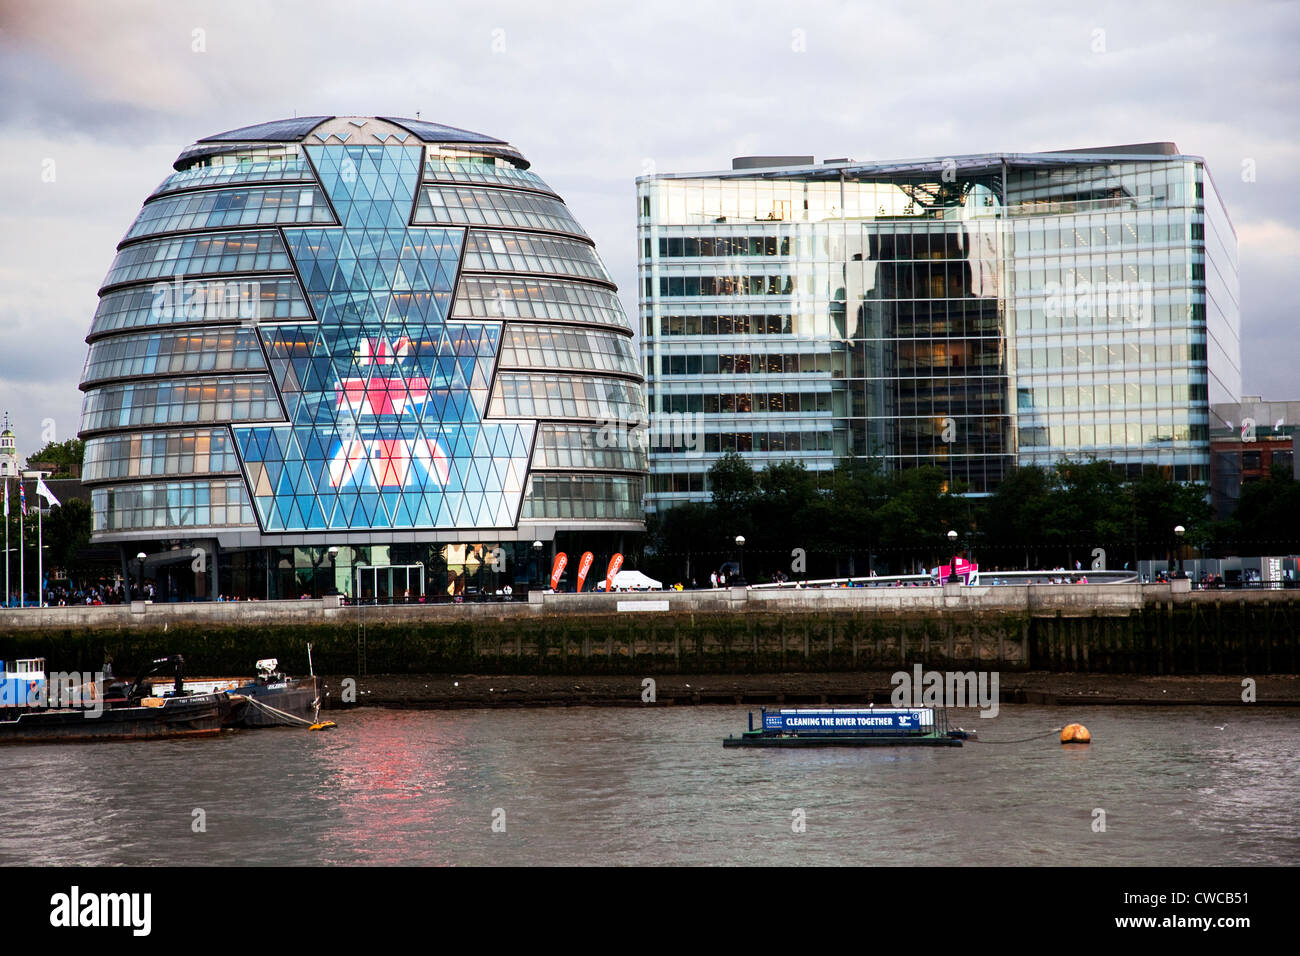 The Scoop,Greater London Authority, City Hall London England. Designed by the award-winning architect Norman Foster, - Stock Image